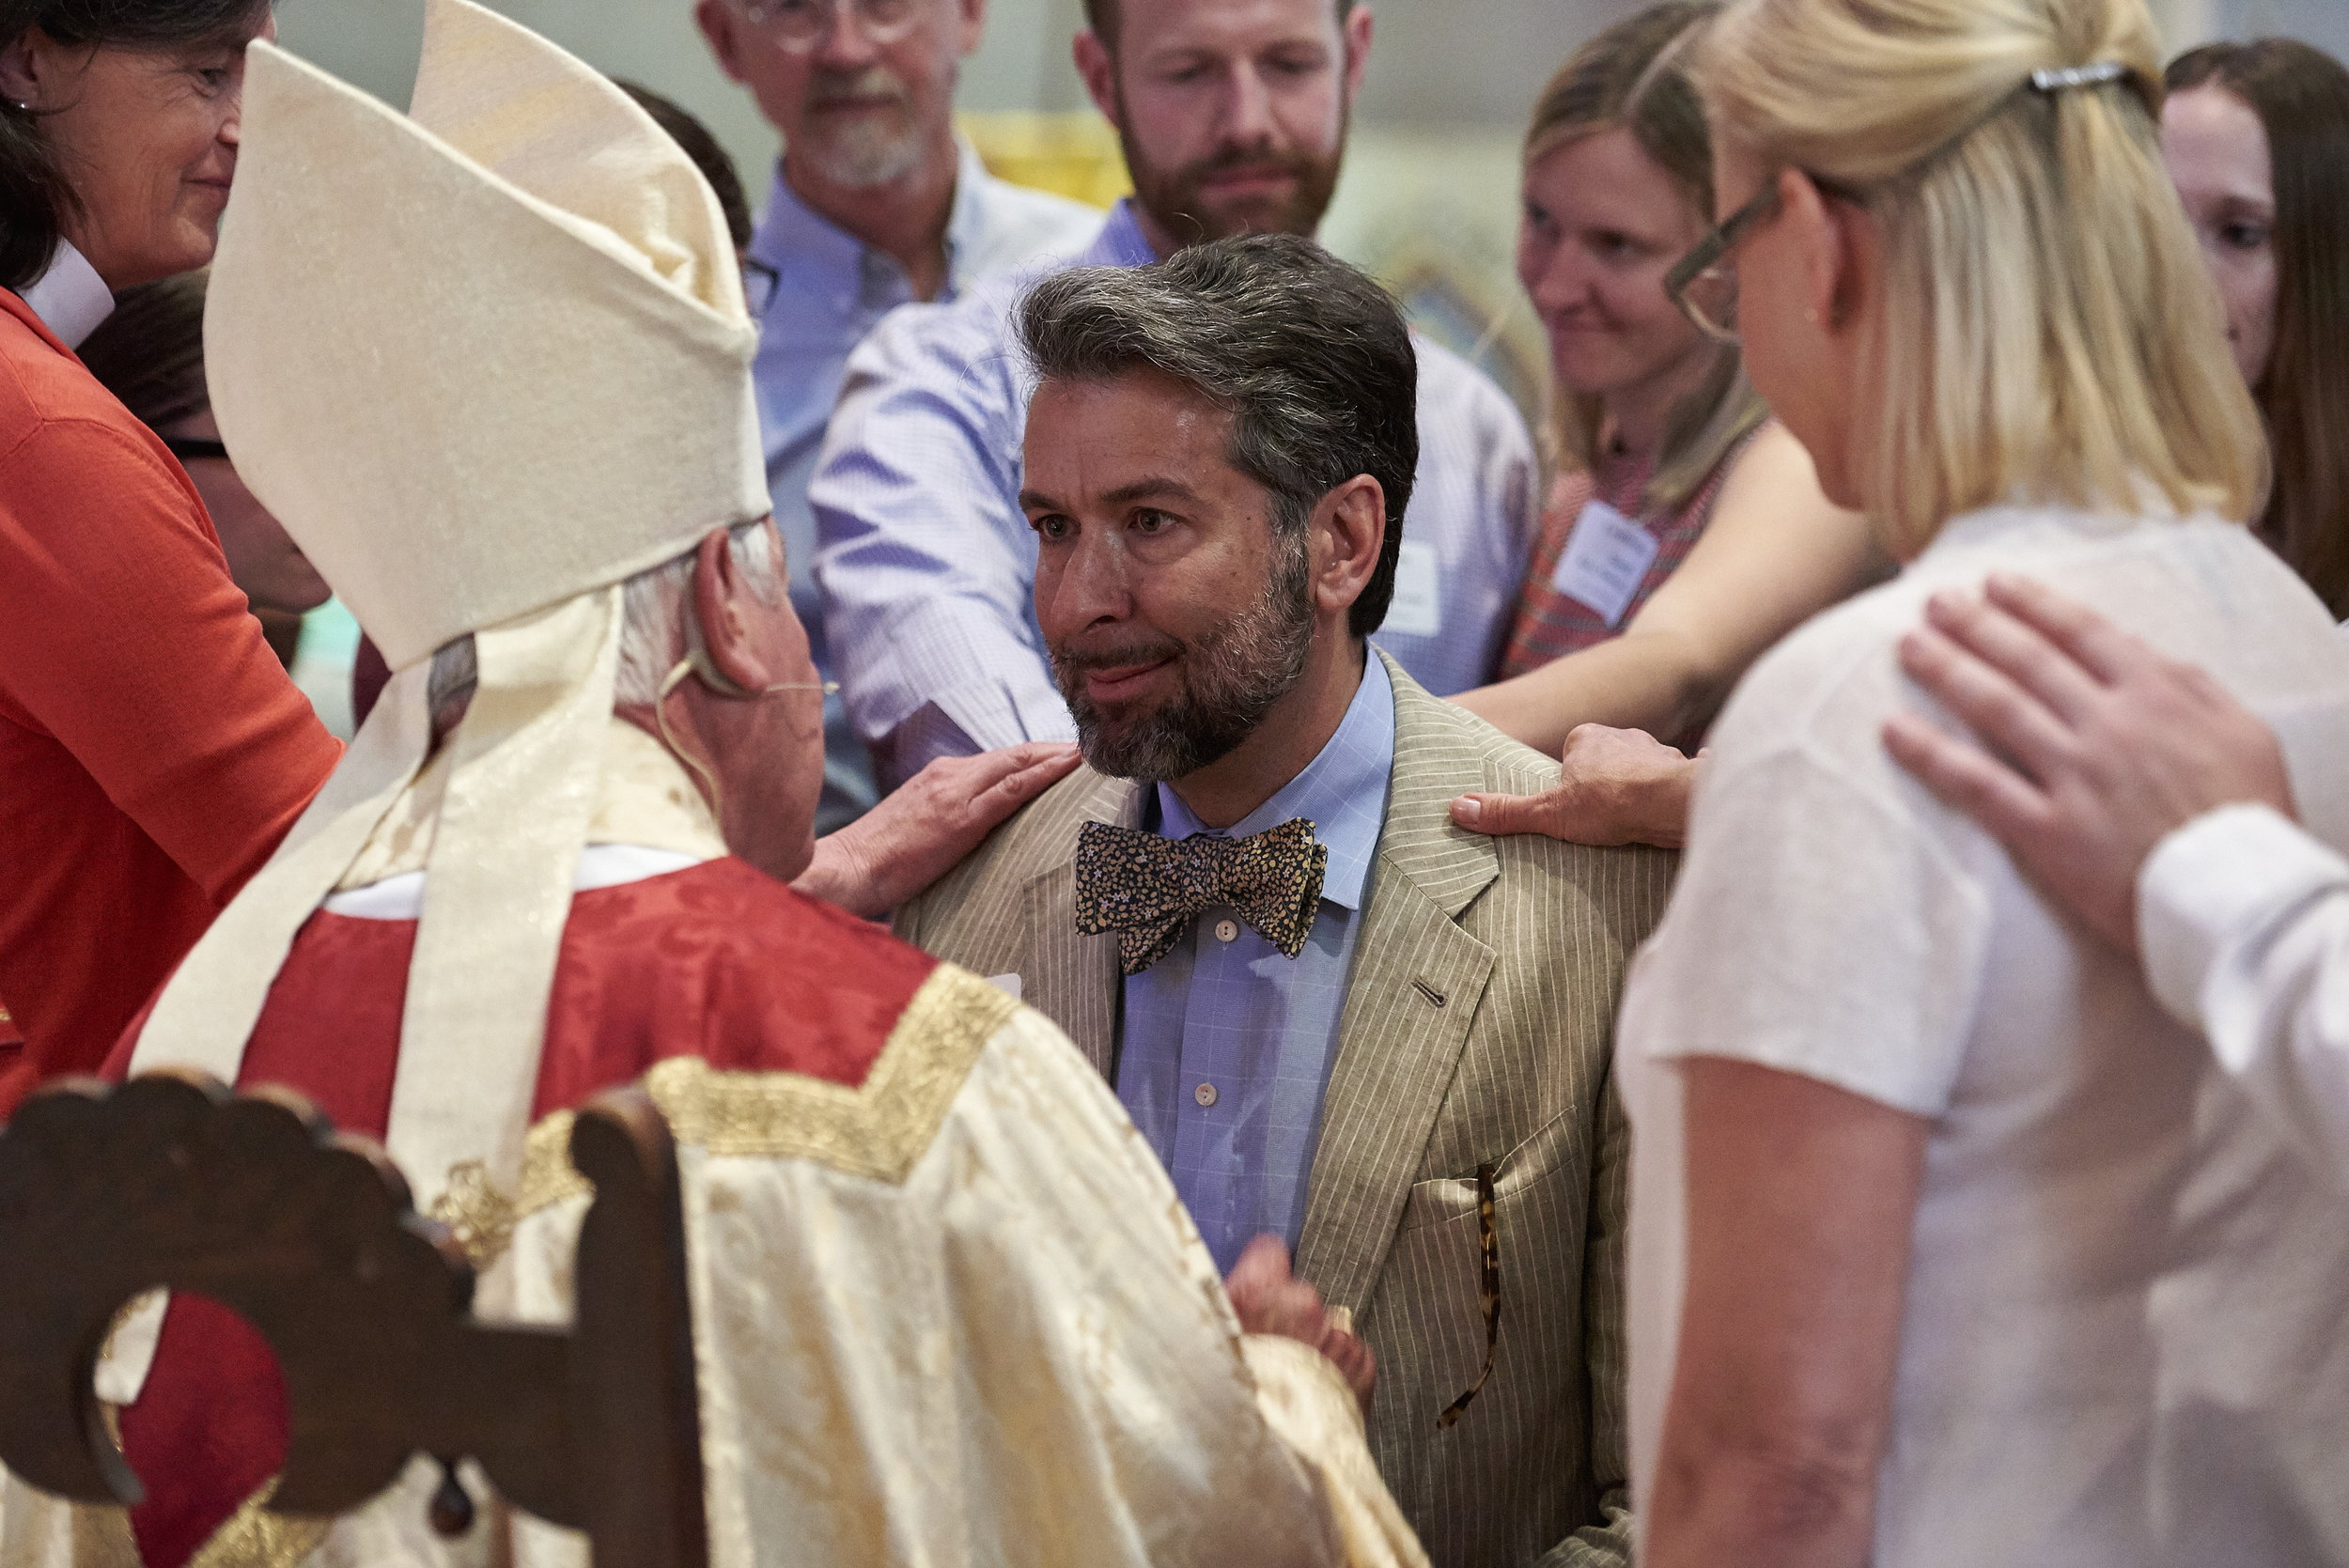 Confirmations with Bishop Winterrowd at St. John's Cathedral, Denver